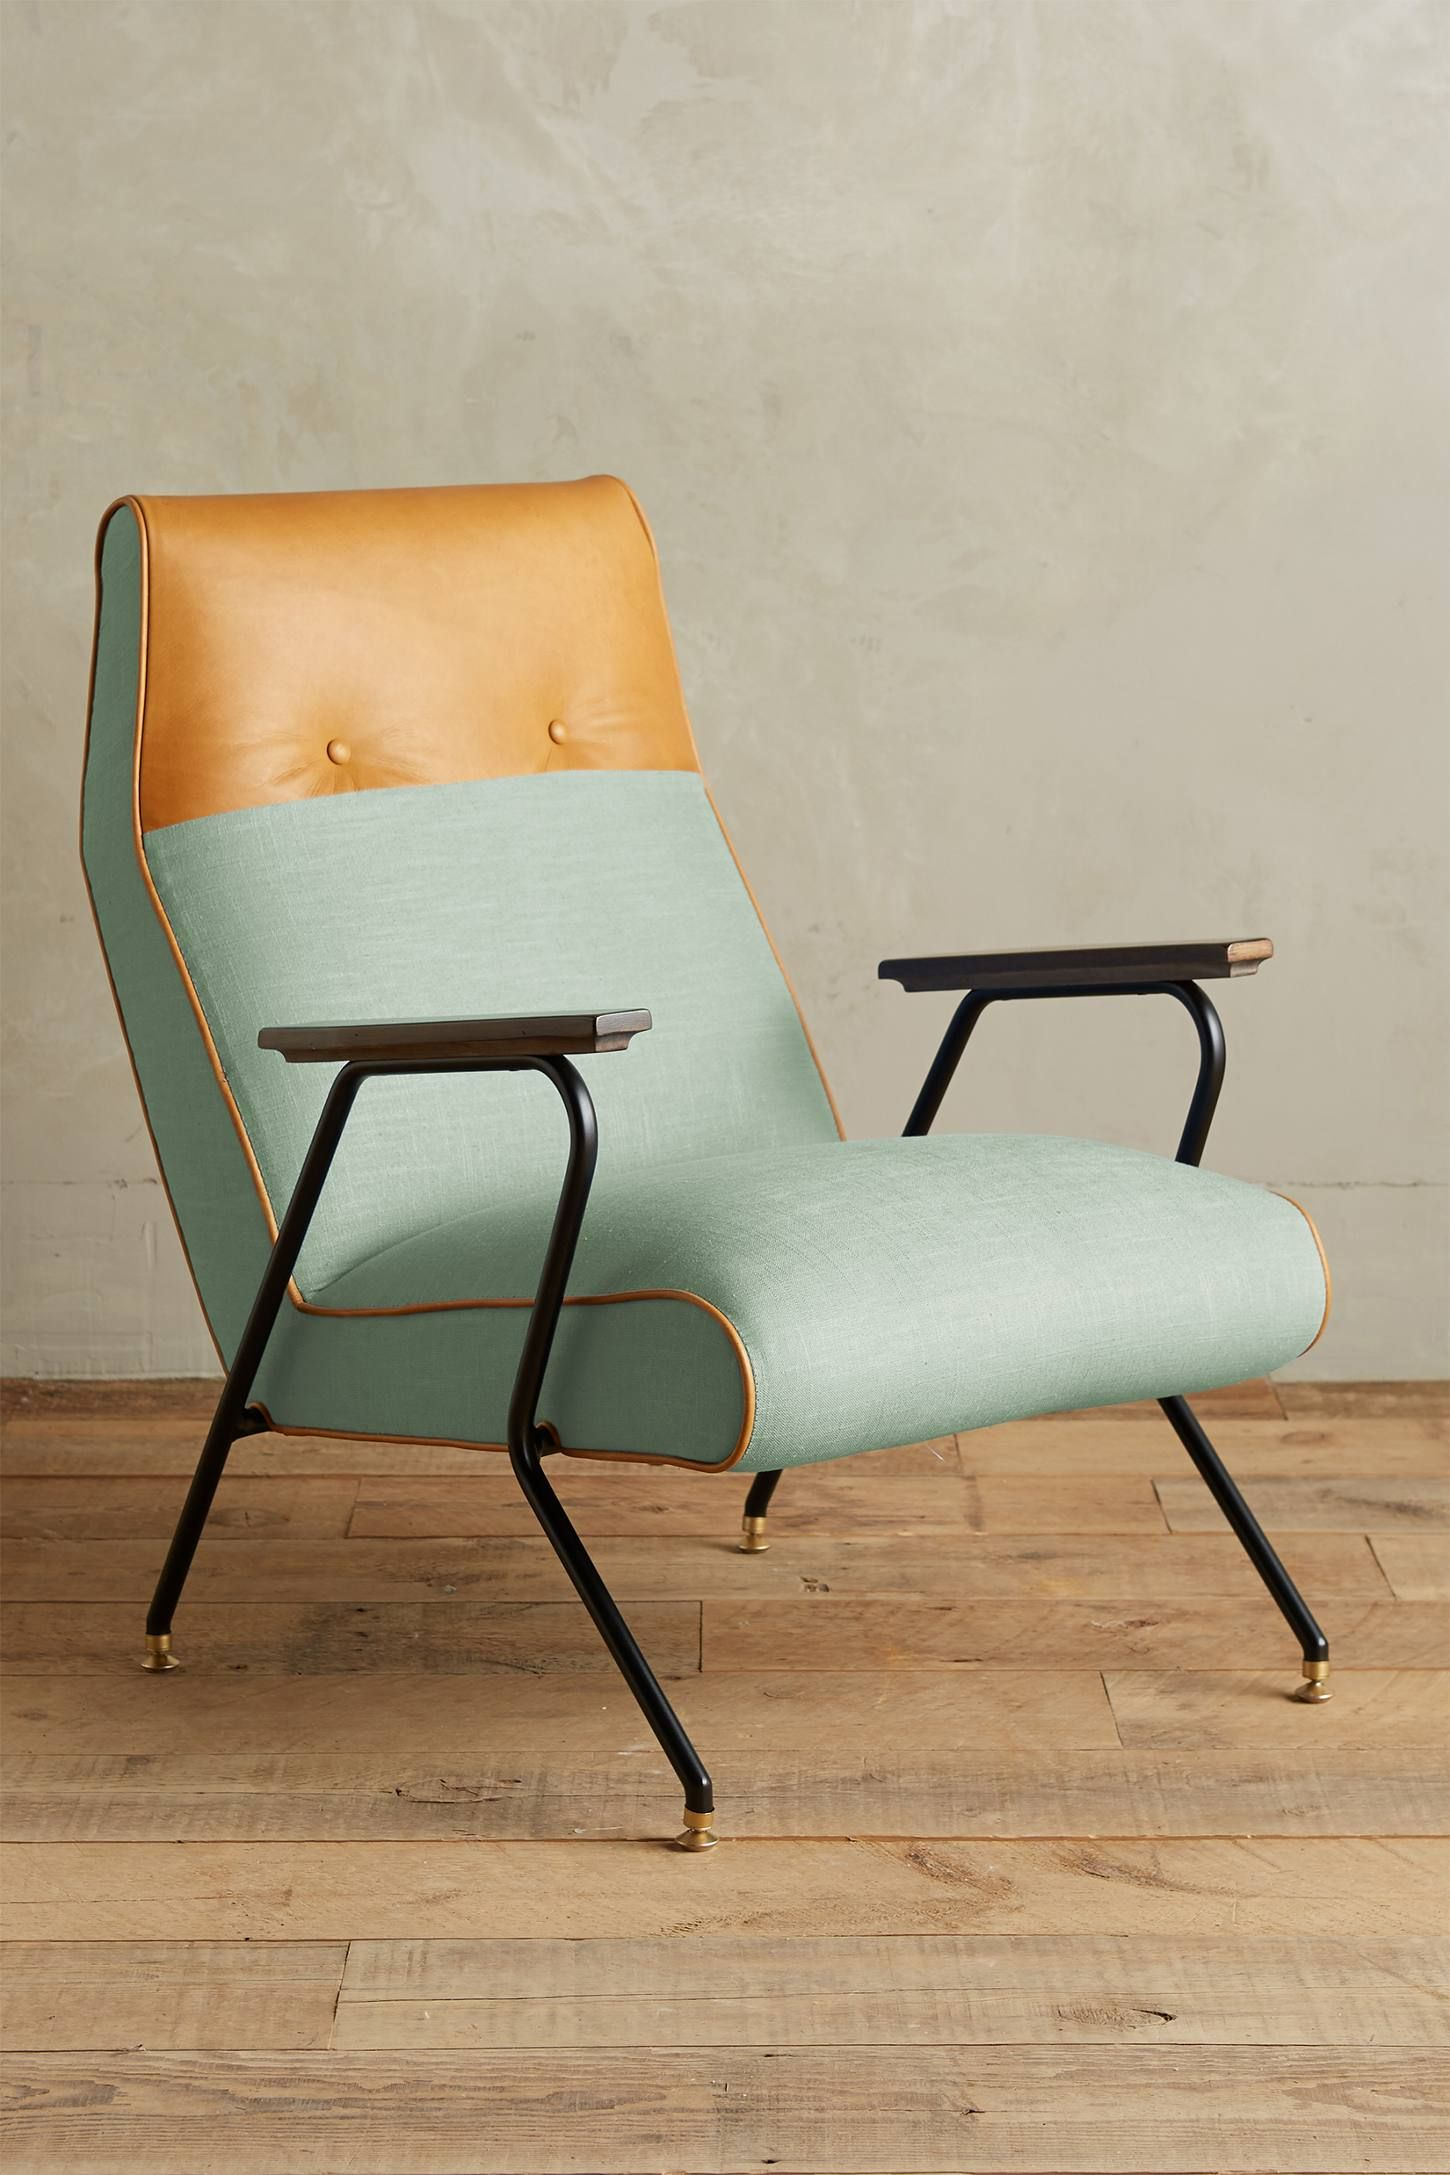 next quentin sofa bed review reviews on simmons beds linen chair living room pinterest furniture shop the and more anthropologie at today read customer discover product details